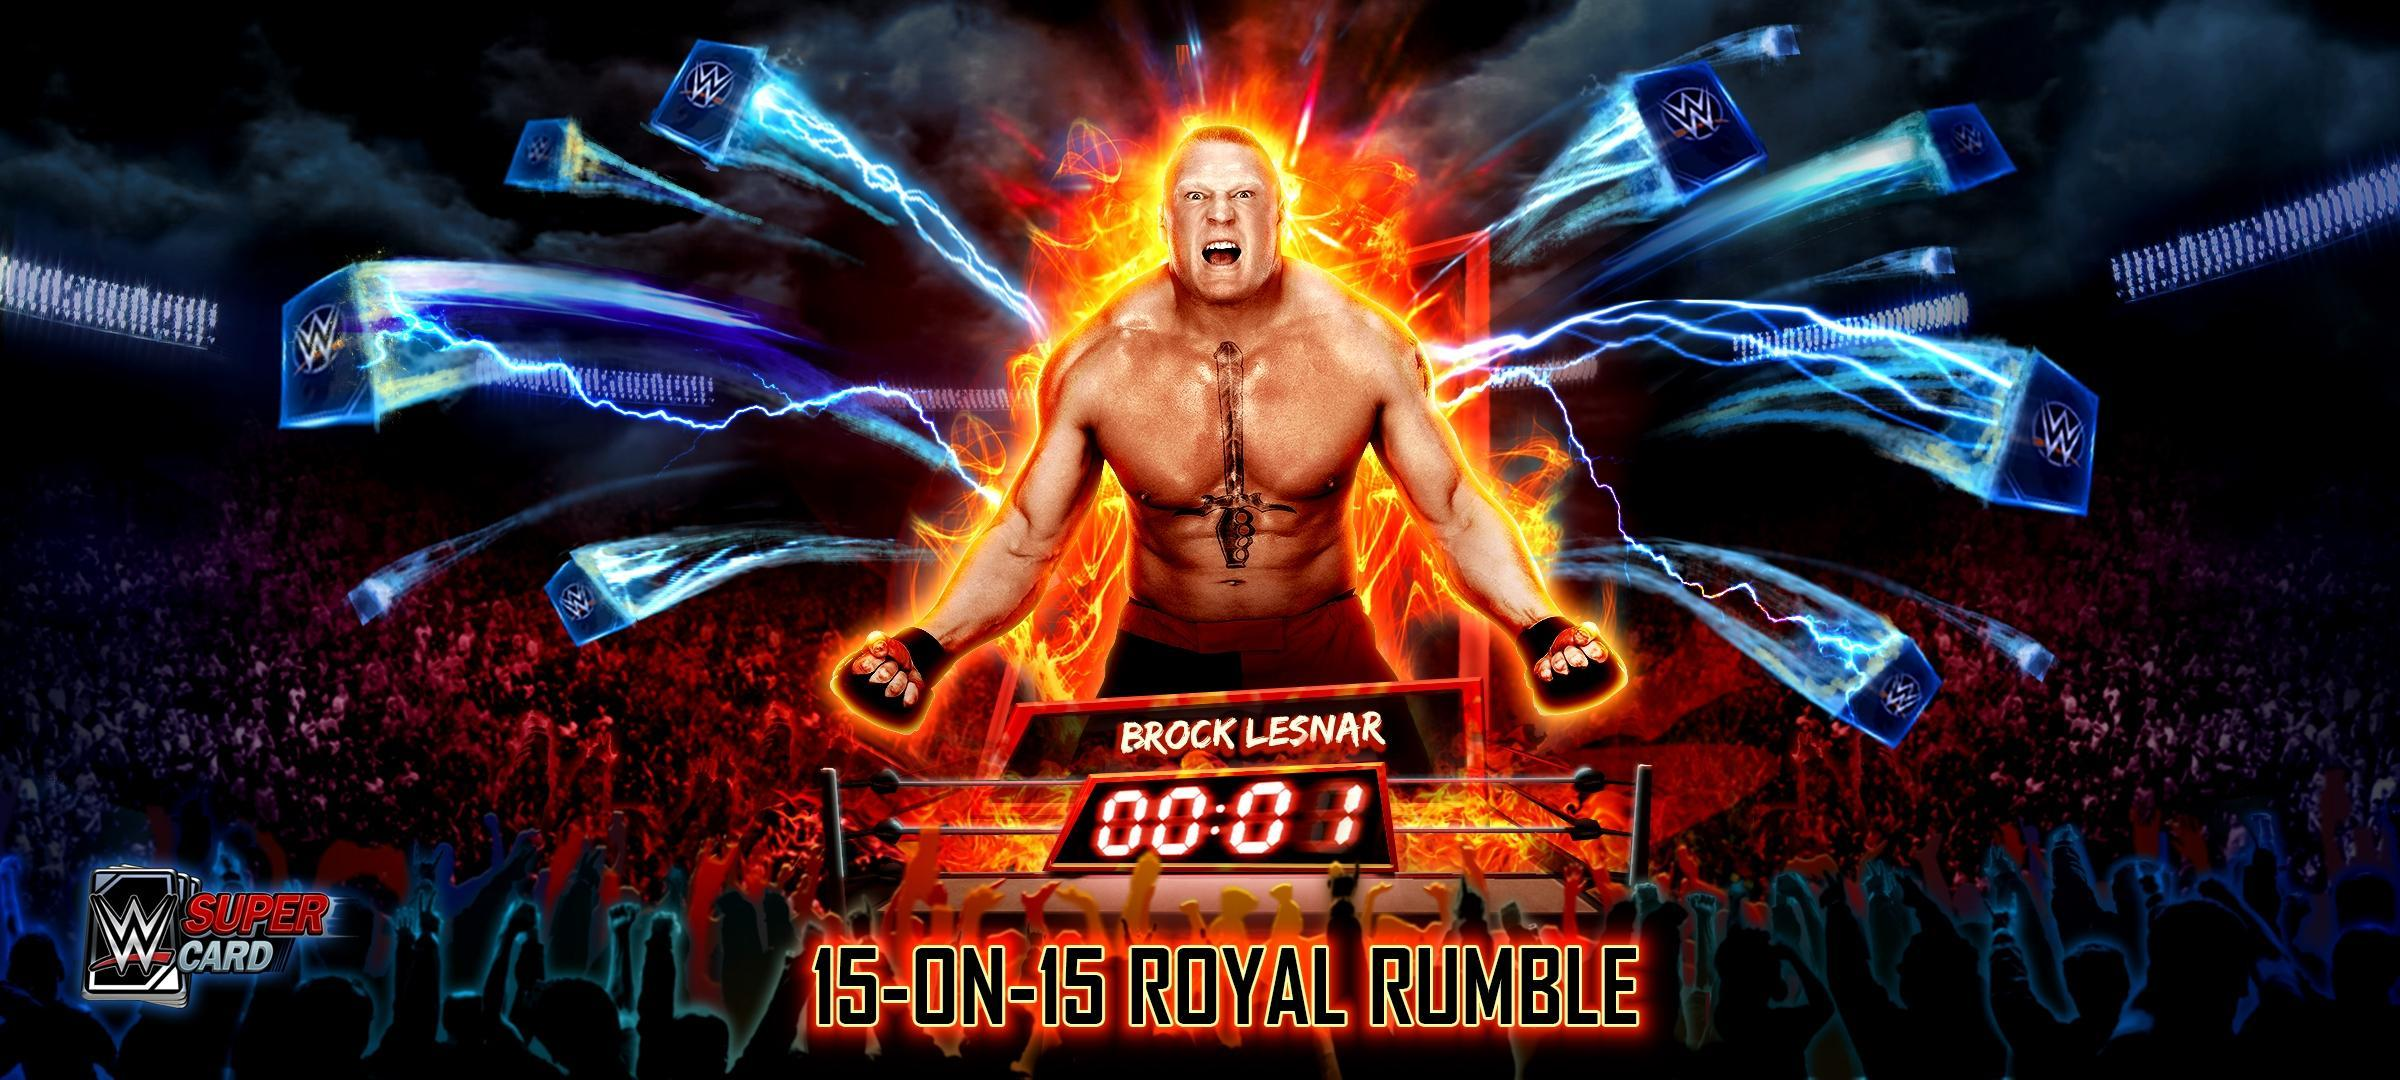 WWE SuperCard introduces Royal Rumble mode as part of Season 3